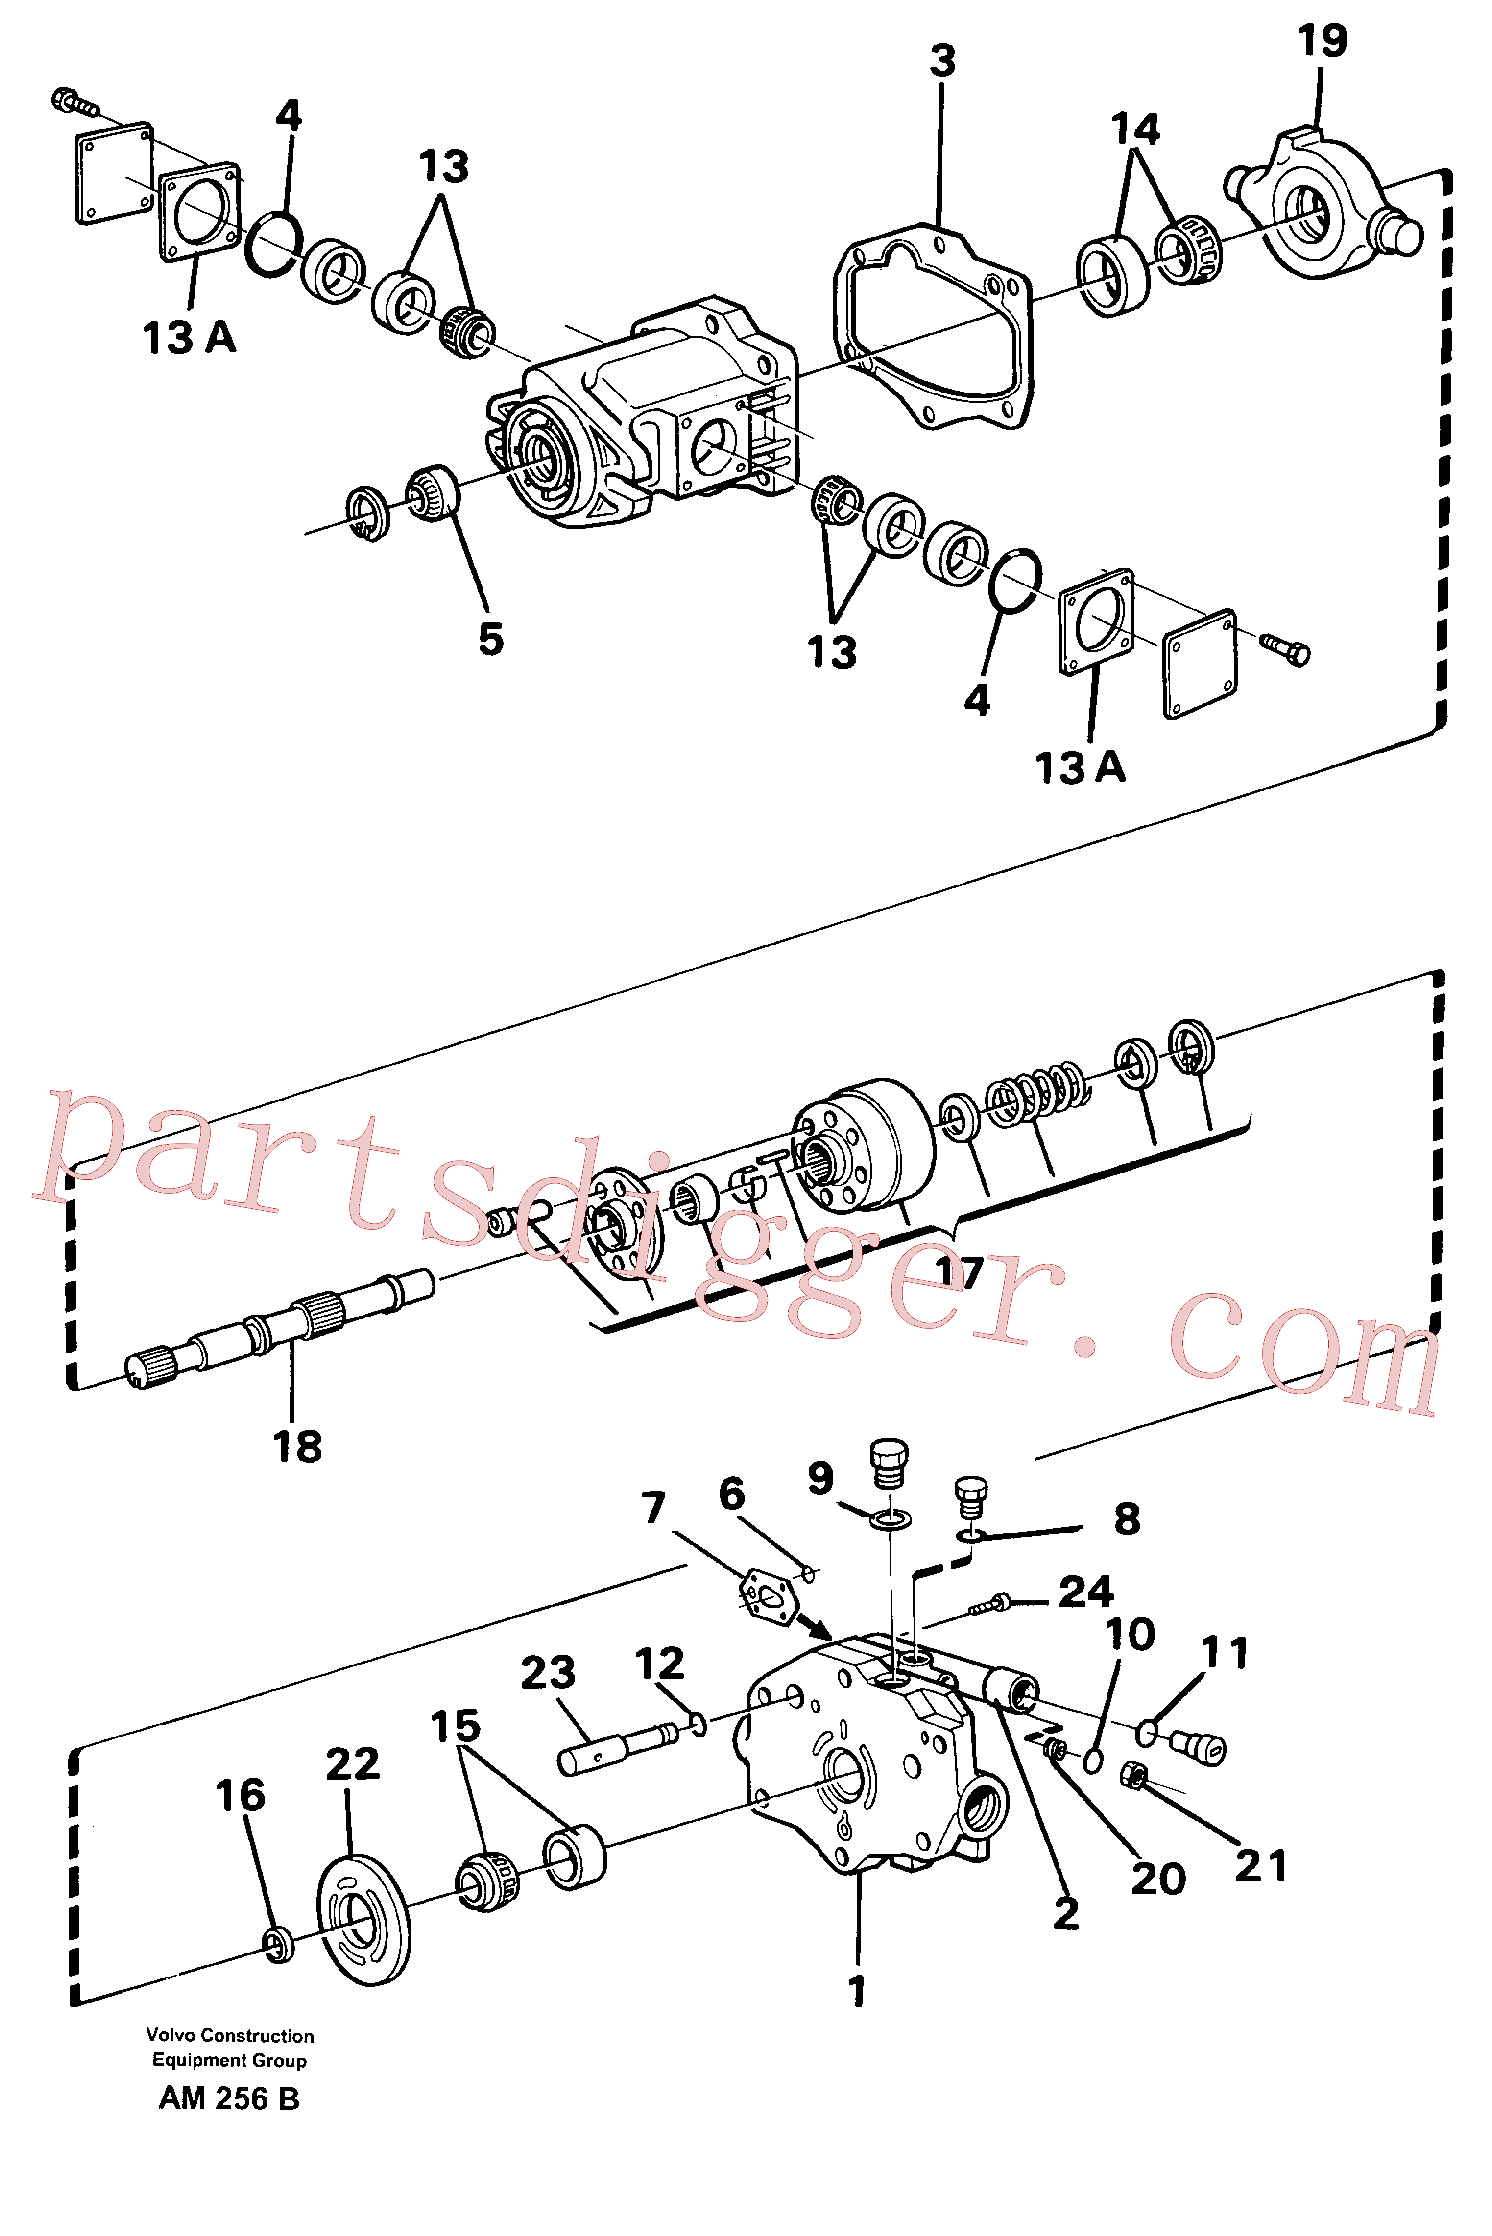 VOE11992194 for Volvo Hydraulic pump(AM256B assembly)